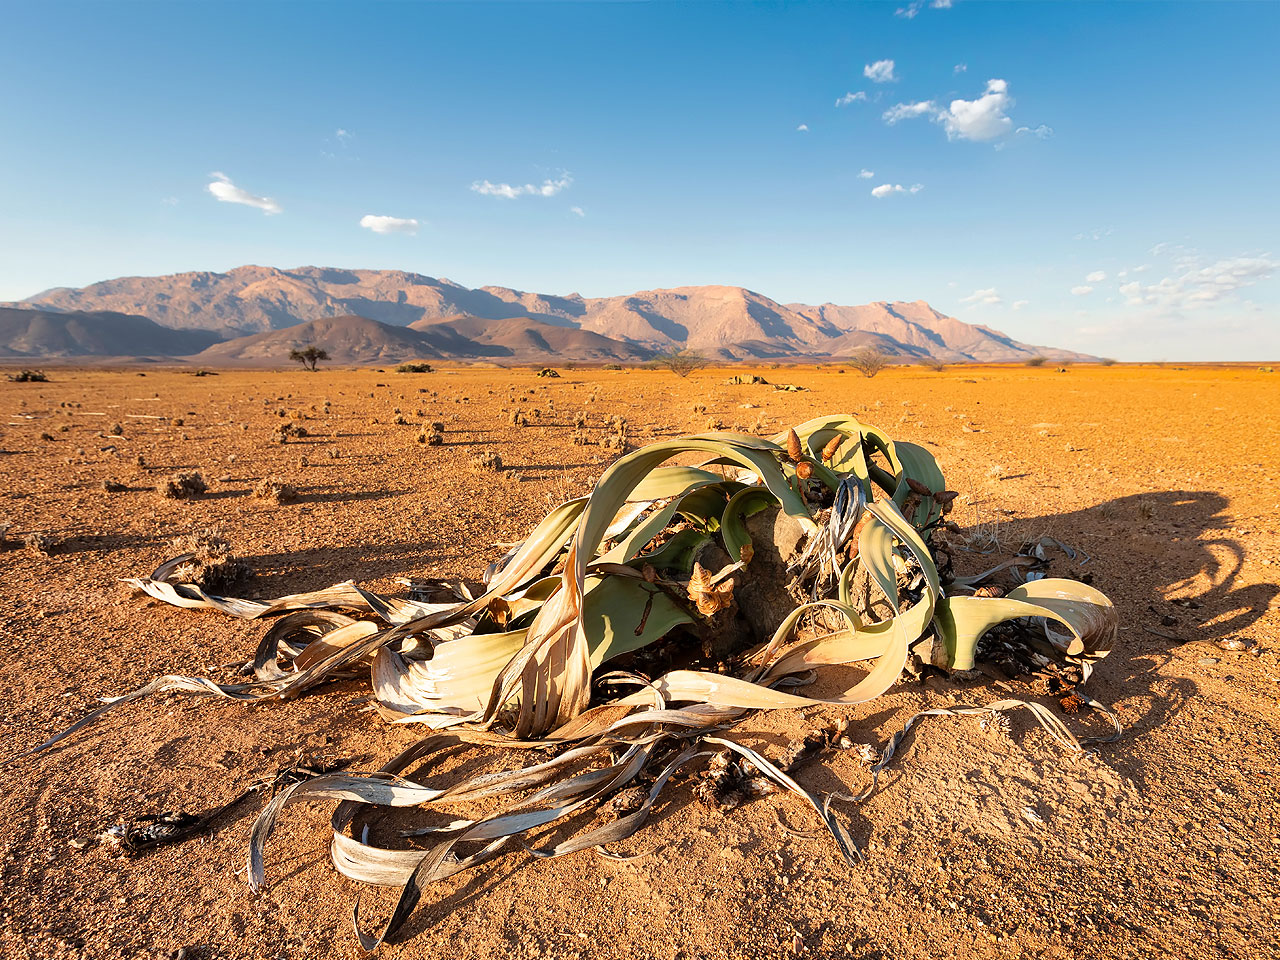 A Welwitschia Mirabilis plant on an open gravel plain with the mountains in the distance.